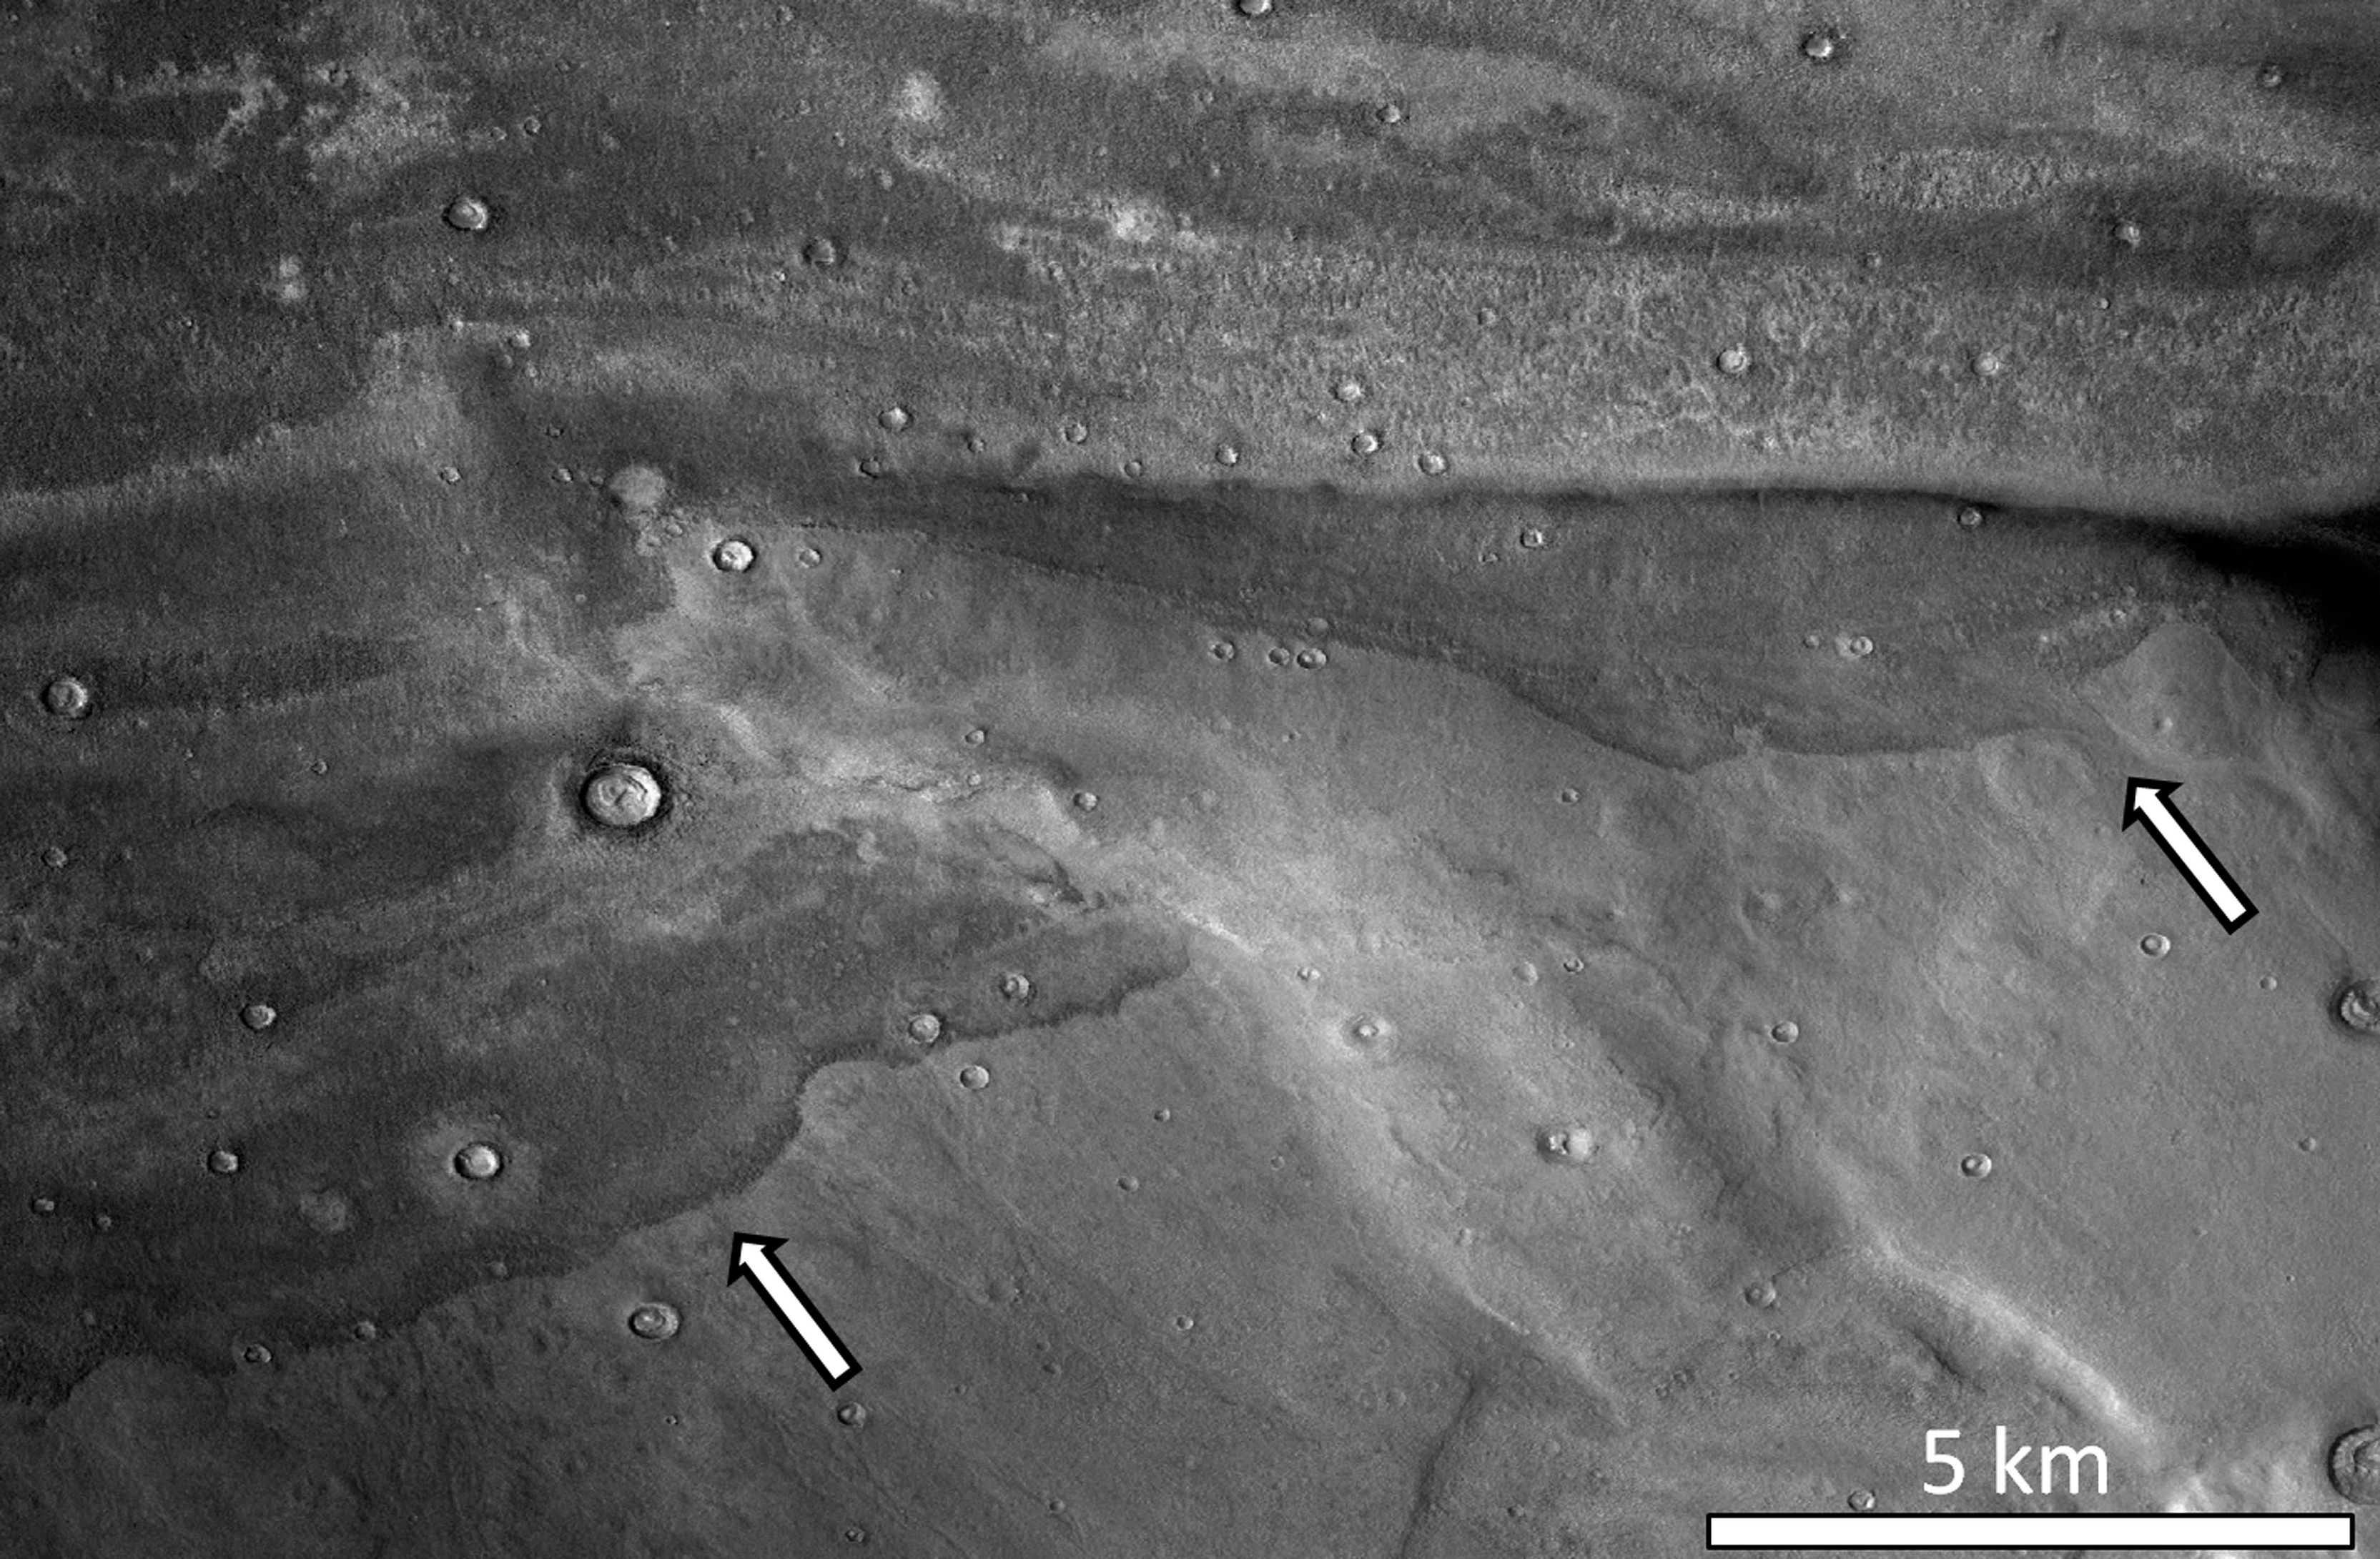 White arrows indicate the edges of the ancient deposits.